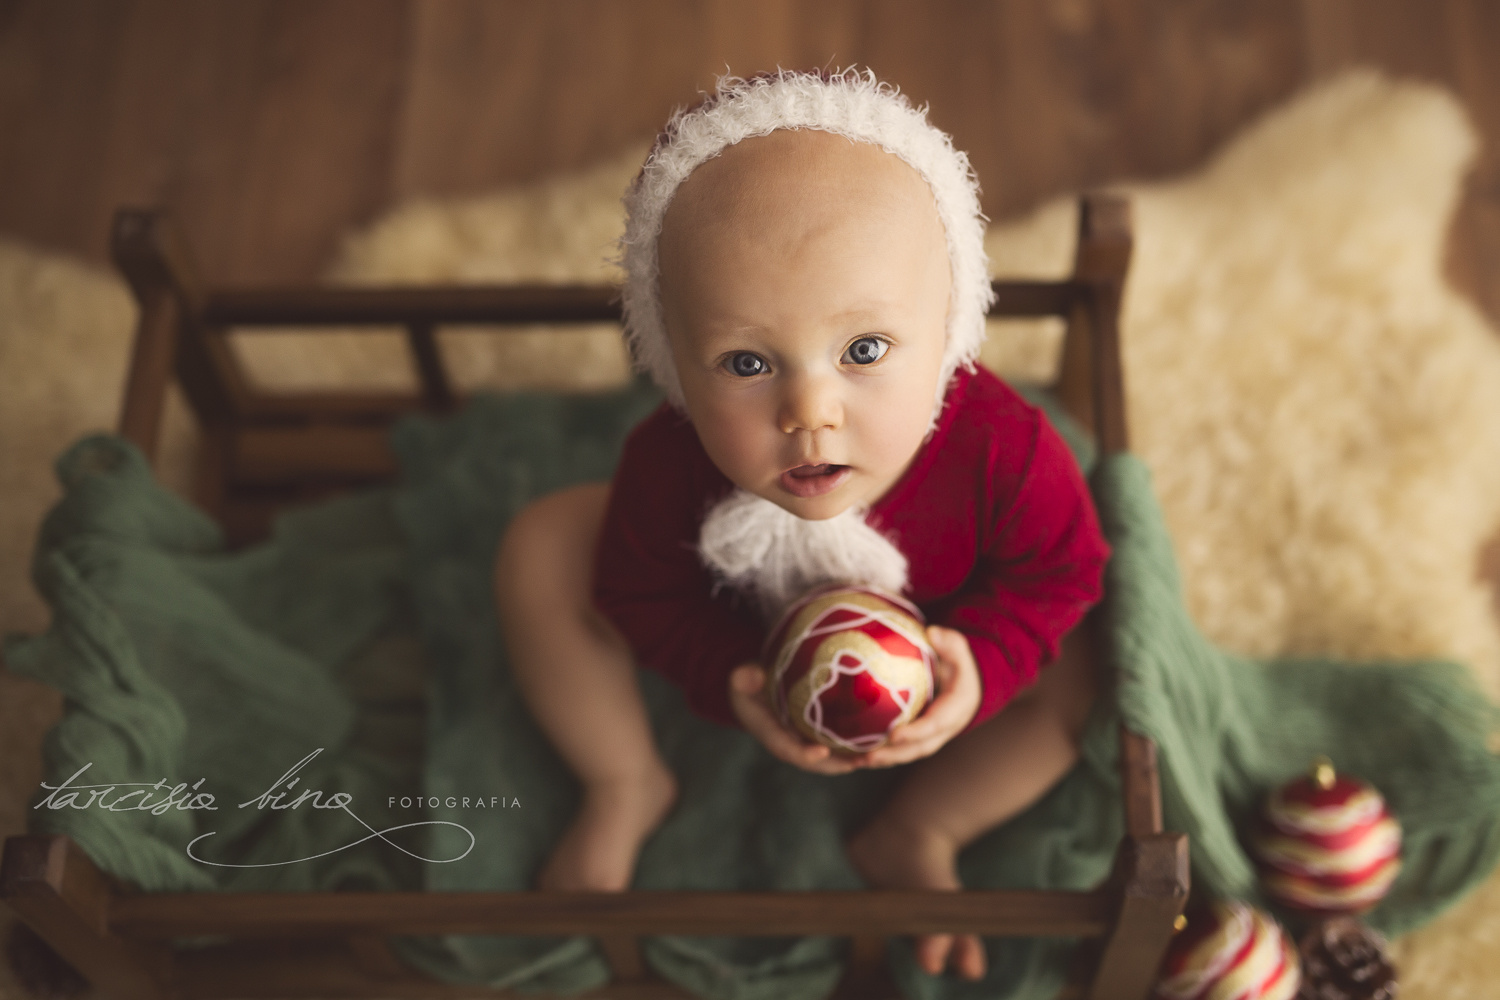 Christmas Baby by Tarcisio Bino